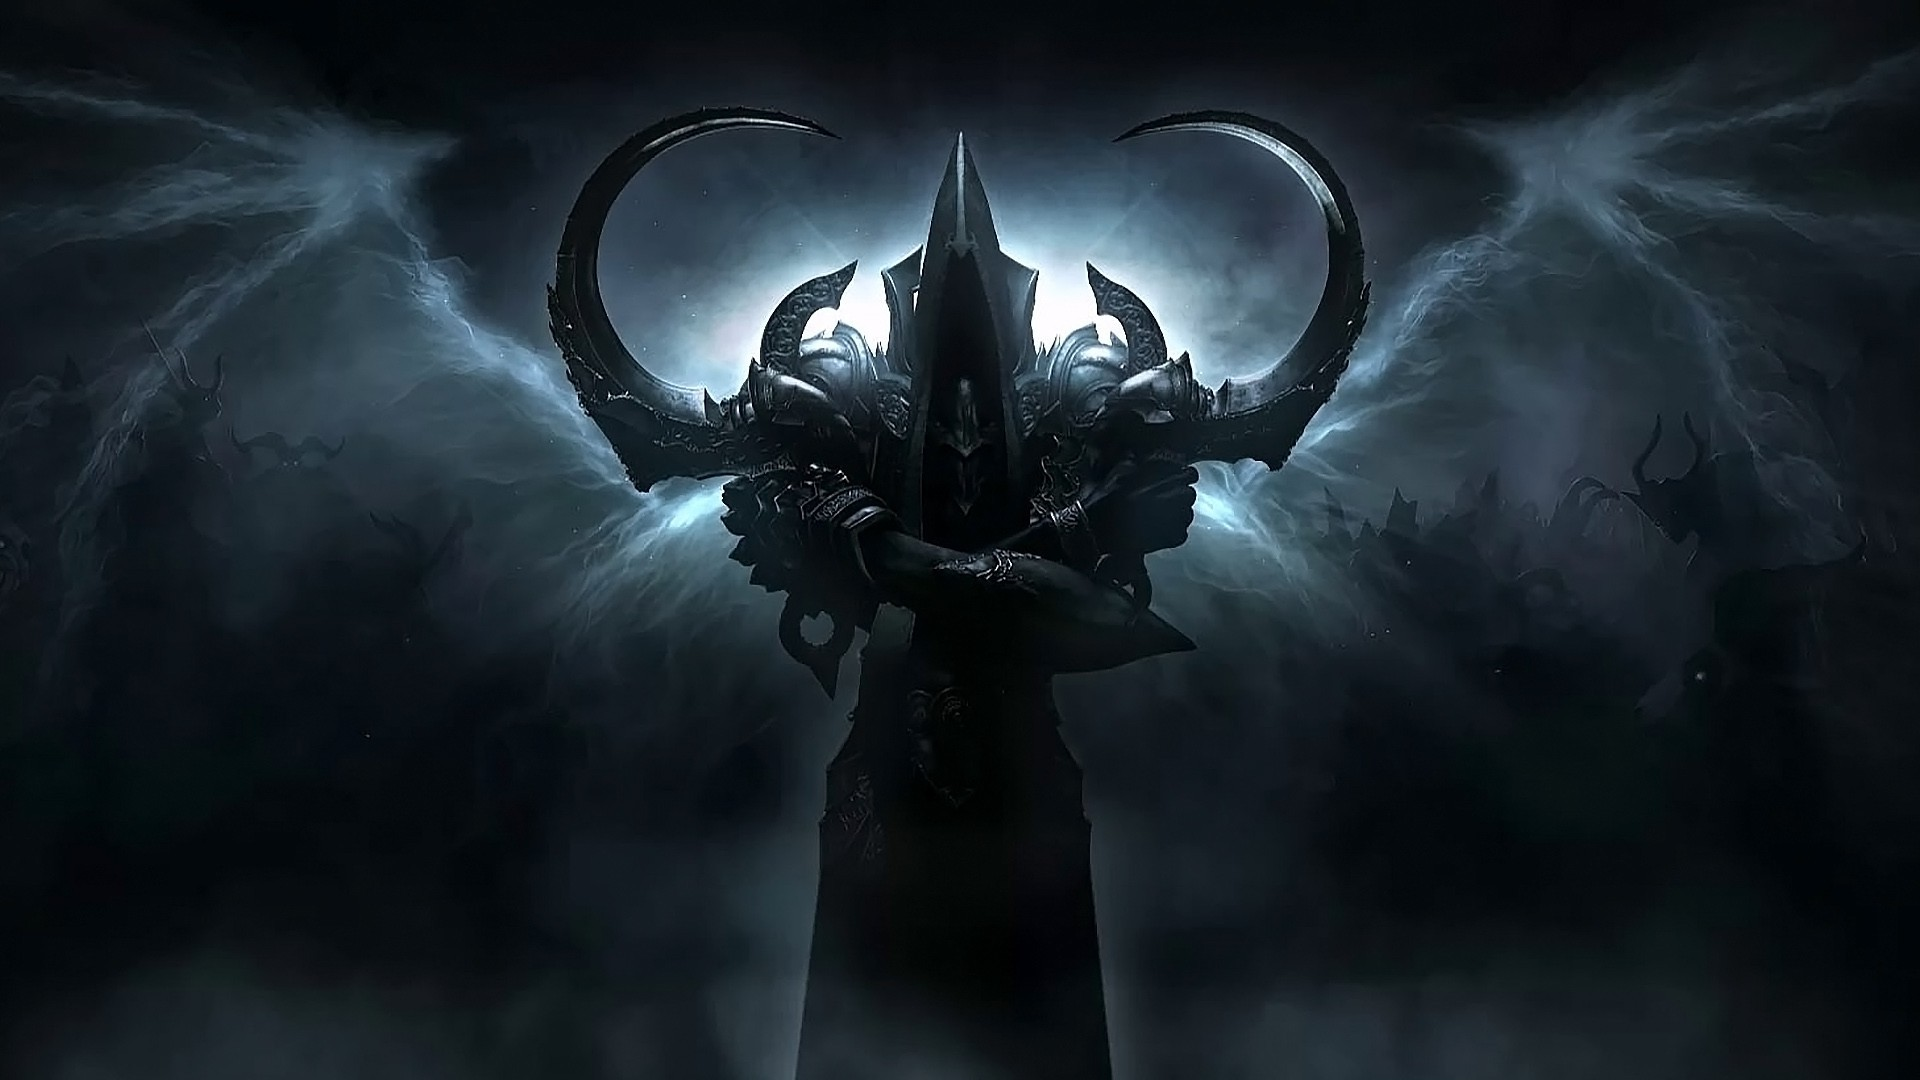 Anime Devil Wallpaper Video Games Diablo Iii 3d Fantasy Art Wallpapers Hd